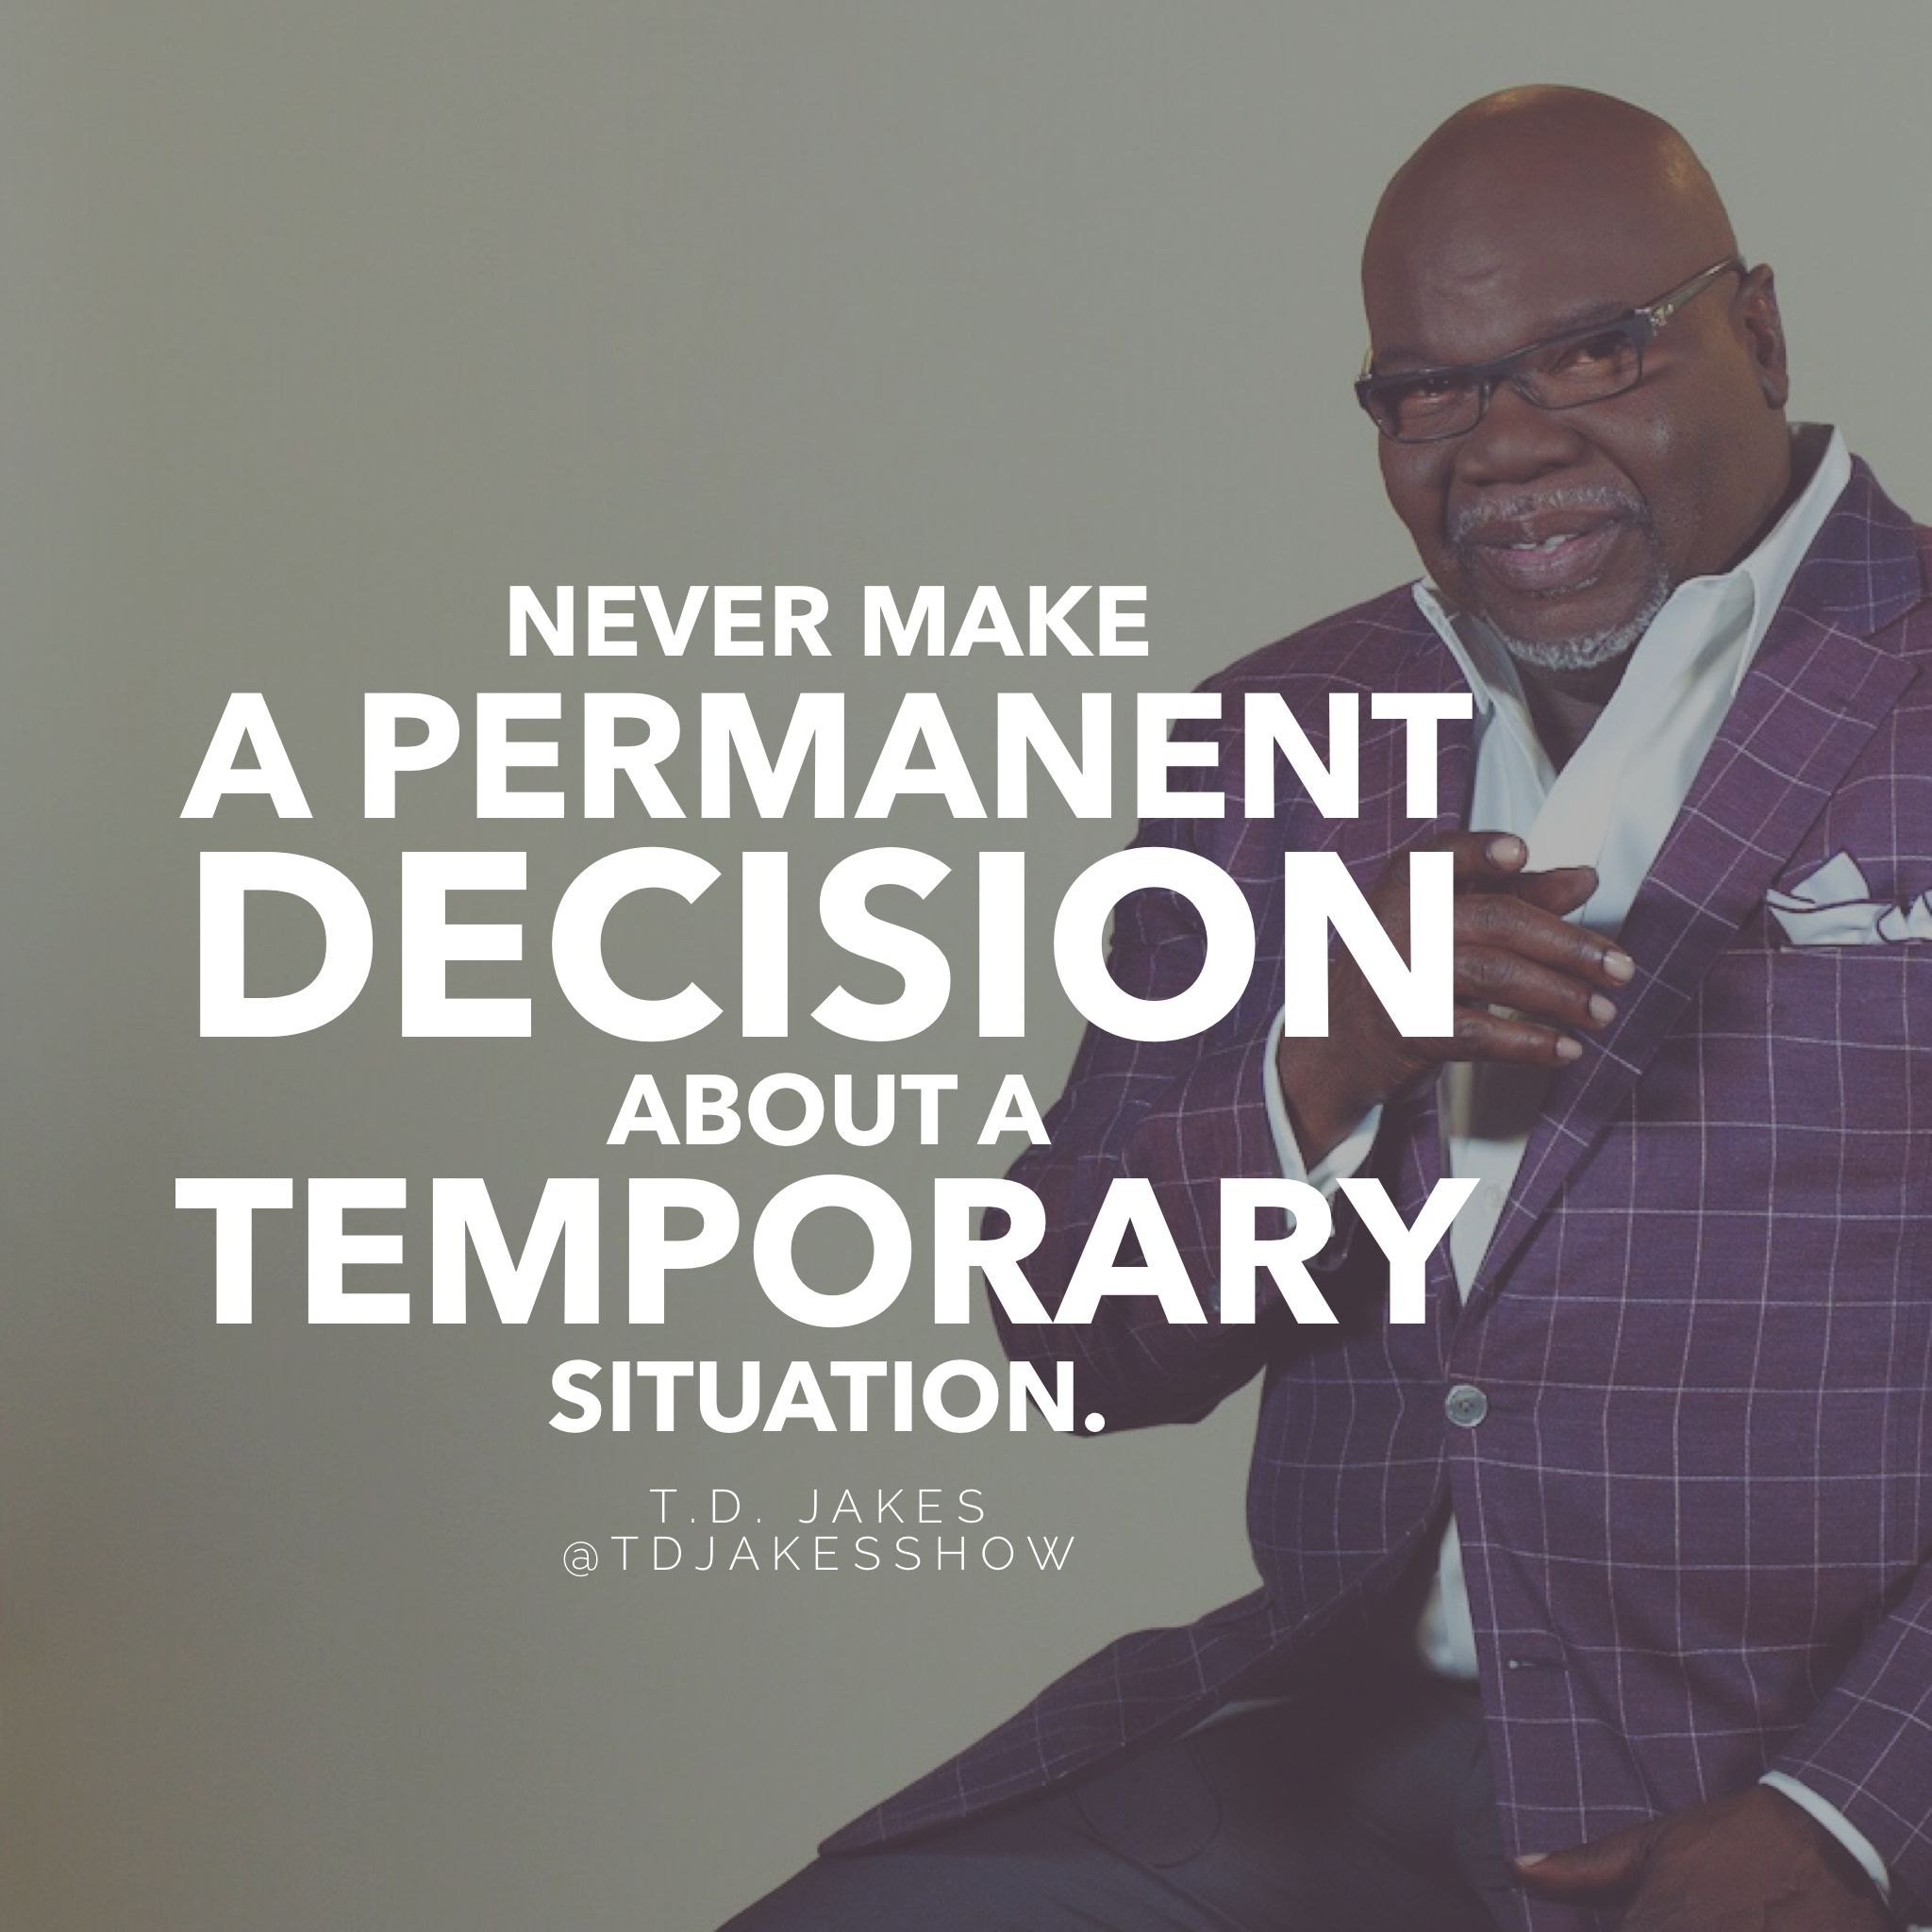 T D Jakes Quotes: #WiseWordsWednesday From T.D. Jakes! More Wisdom Coming To